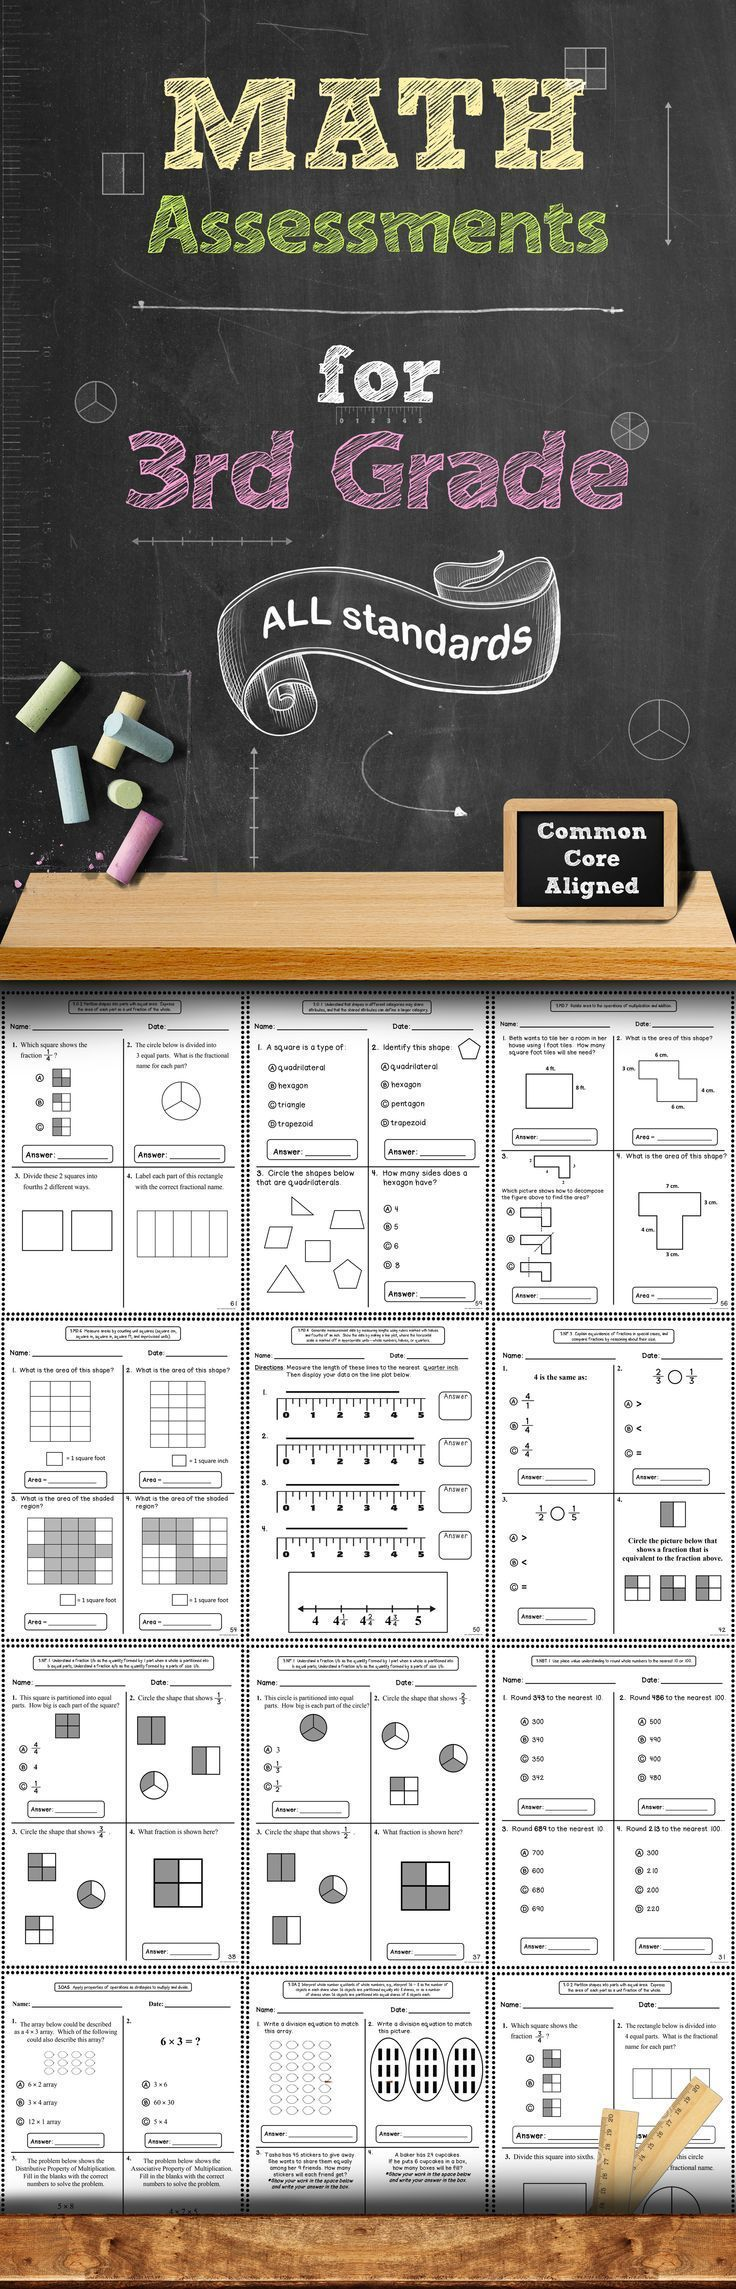 This 60+ page assessment bundle contains quick, 1 page math assessments for every 3rd Grade Common Core Math Standard. There are 2 assessments included for each standard. These assessments packs are also available for grades K, 1, 2, 4, and 5! (scheduled